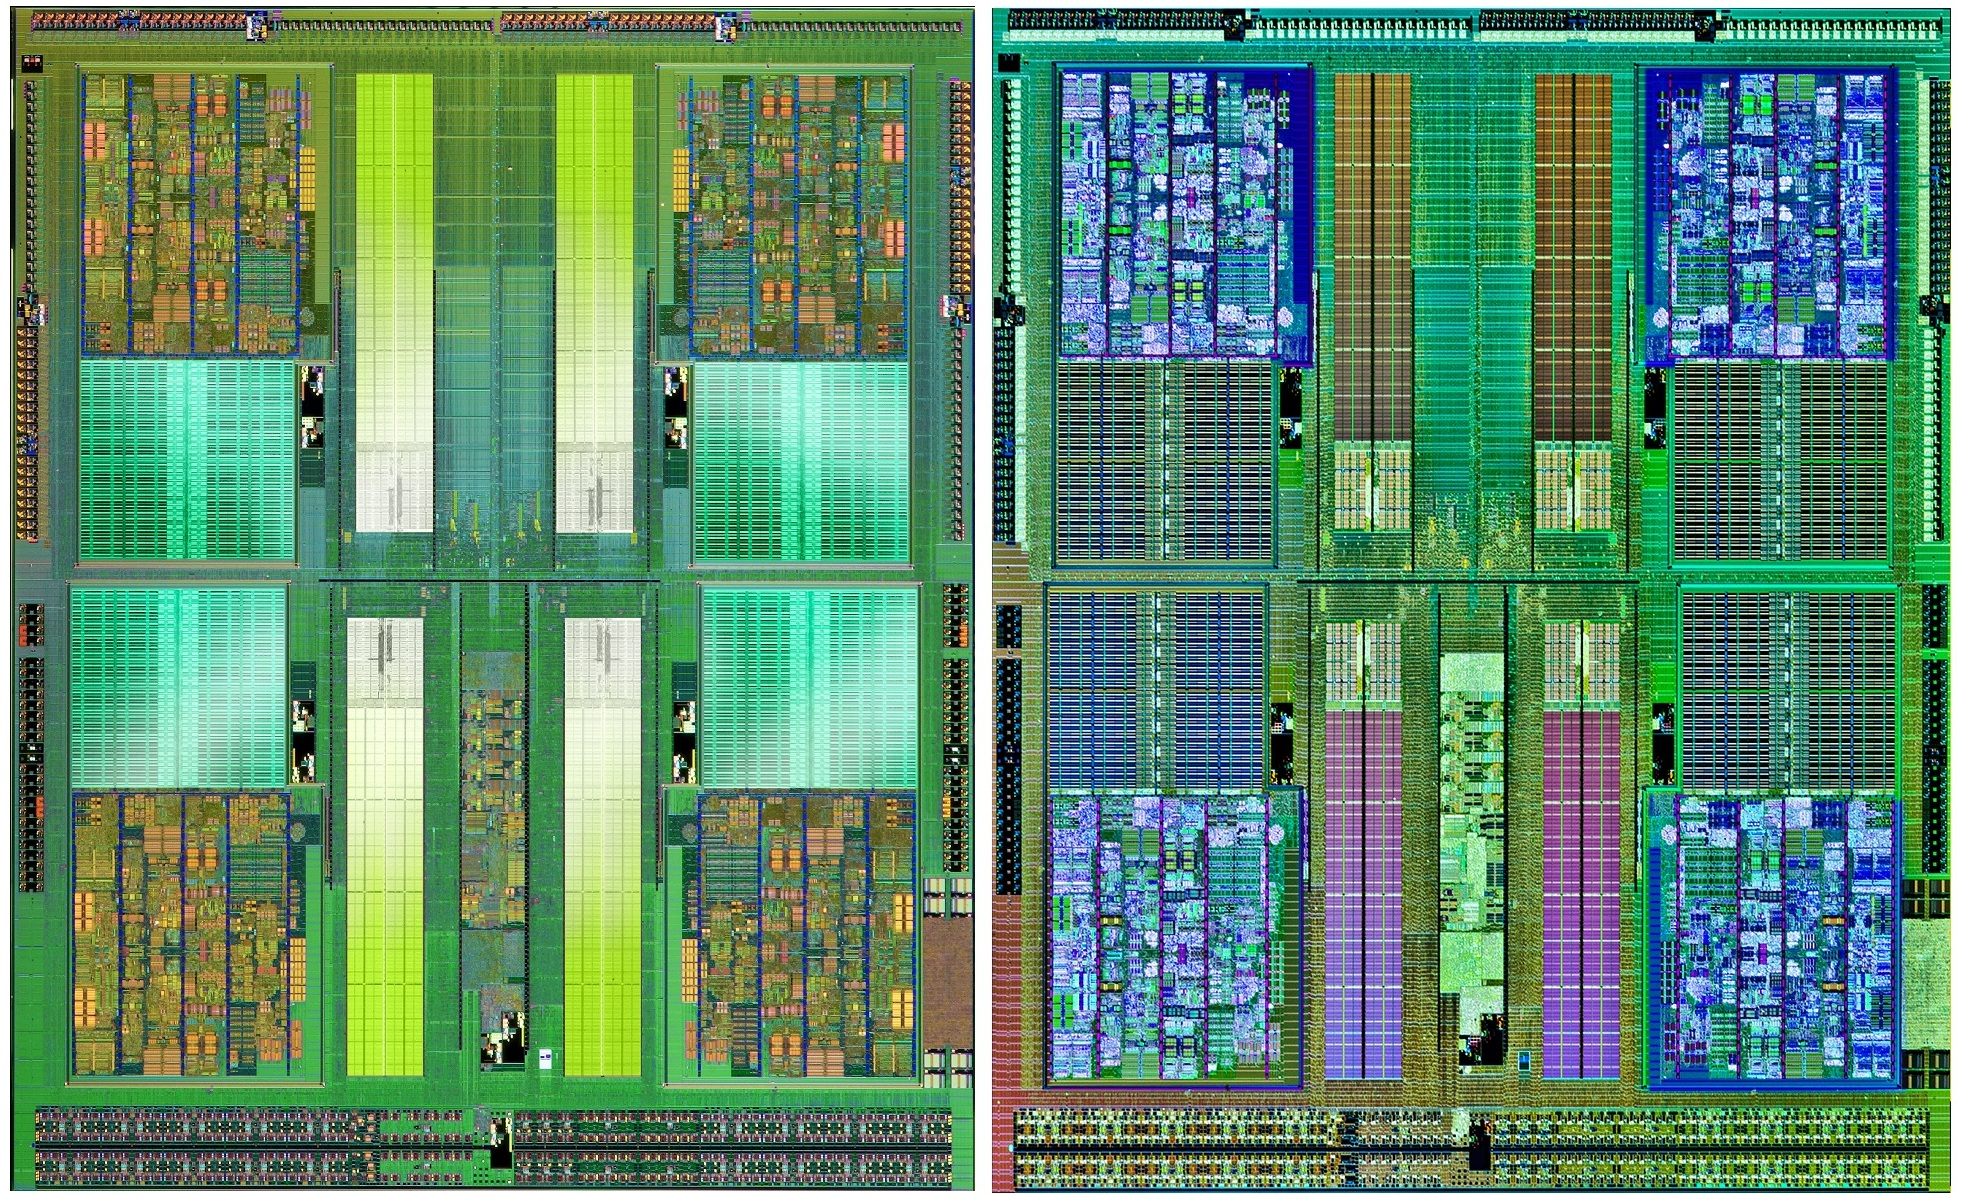 Amd Officially Launches The Piledriver Based Fx Vishera Processors